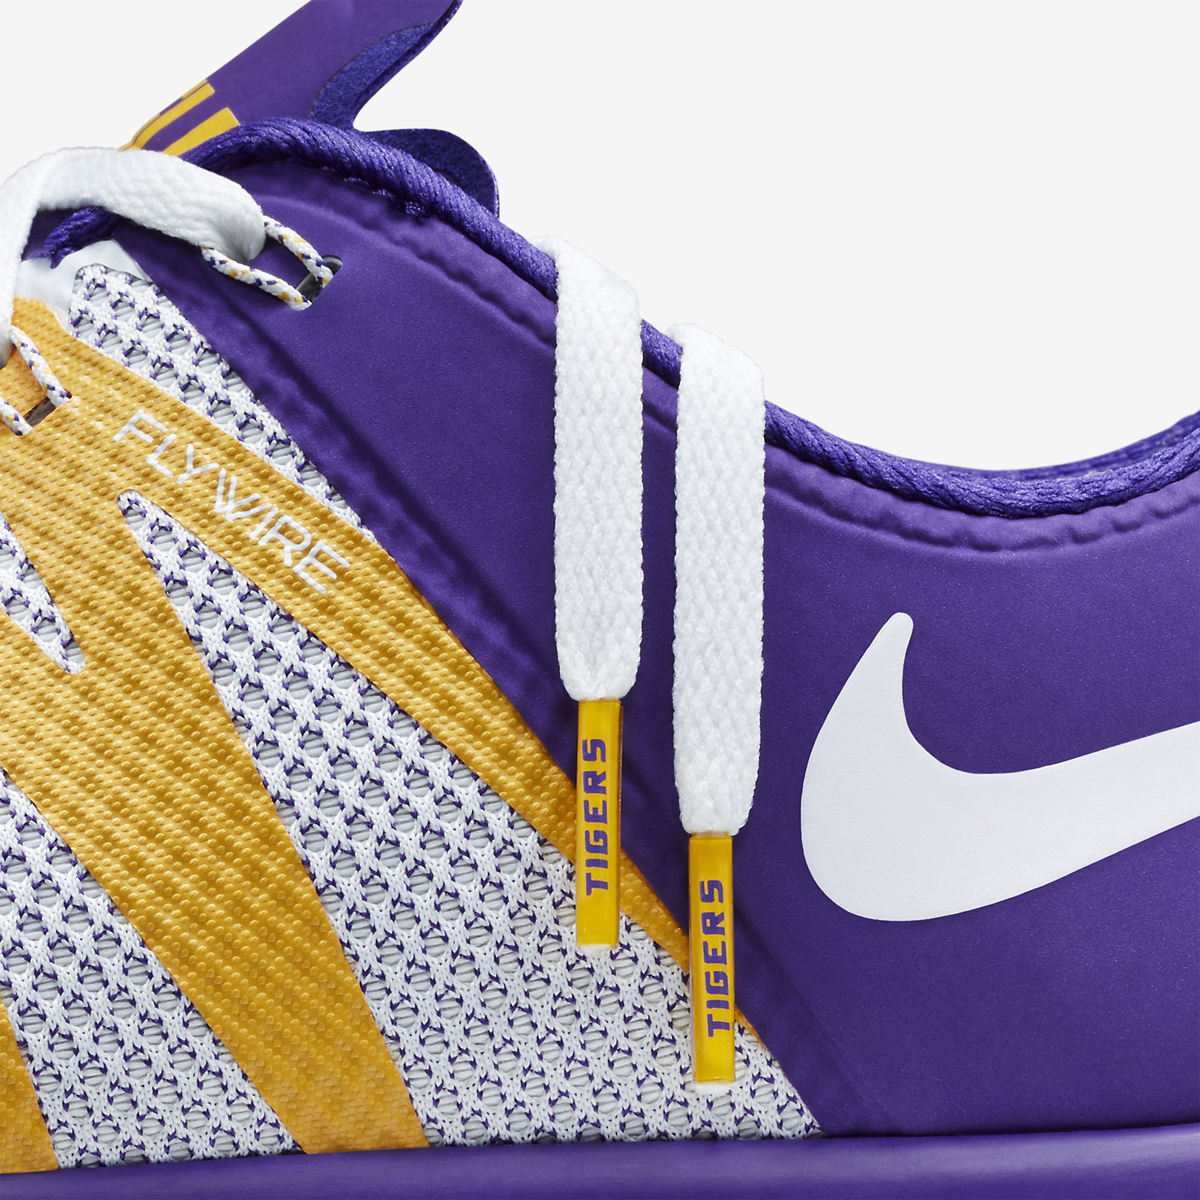 ac789f67feb2 ... Nike Is Releasing a Ton of College-Themed Sneakers Tomorrow Sole  Collector